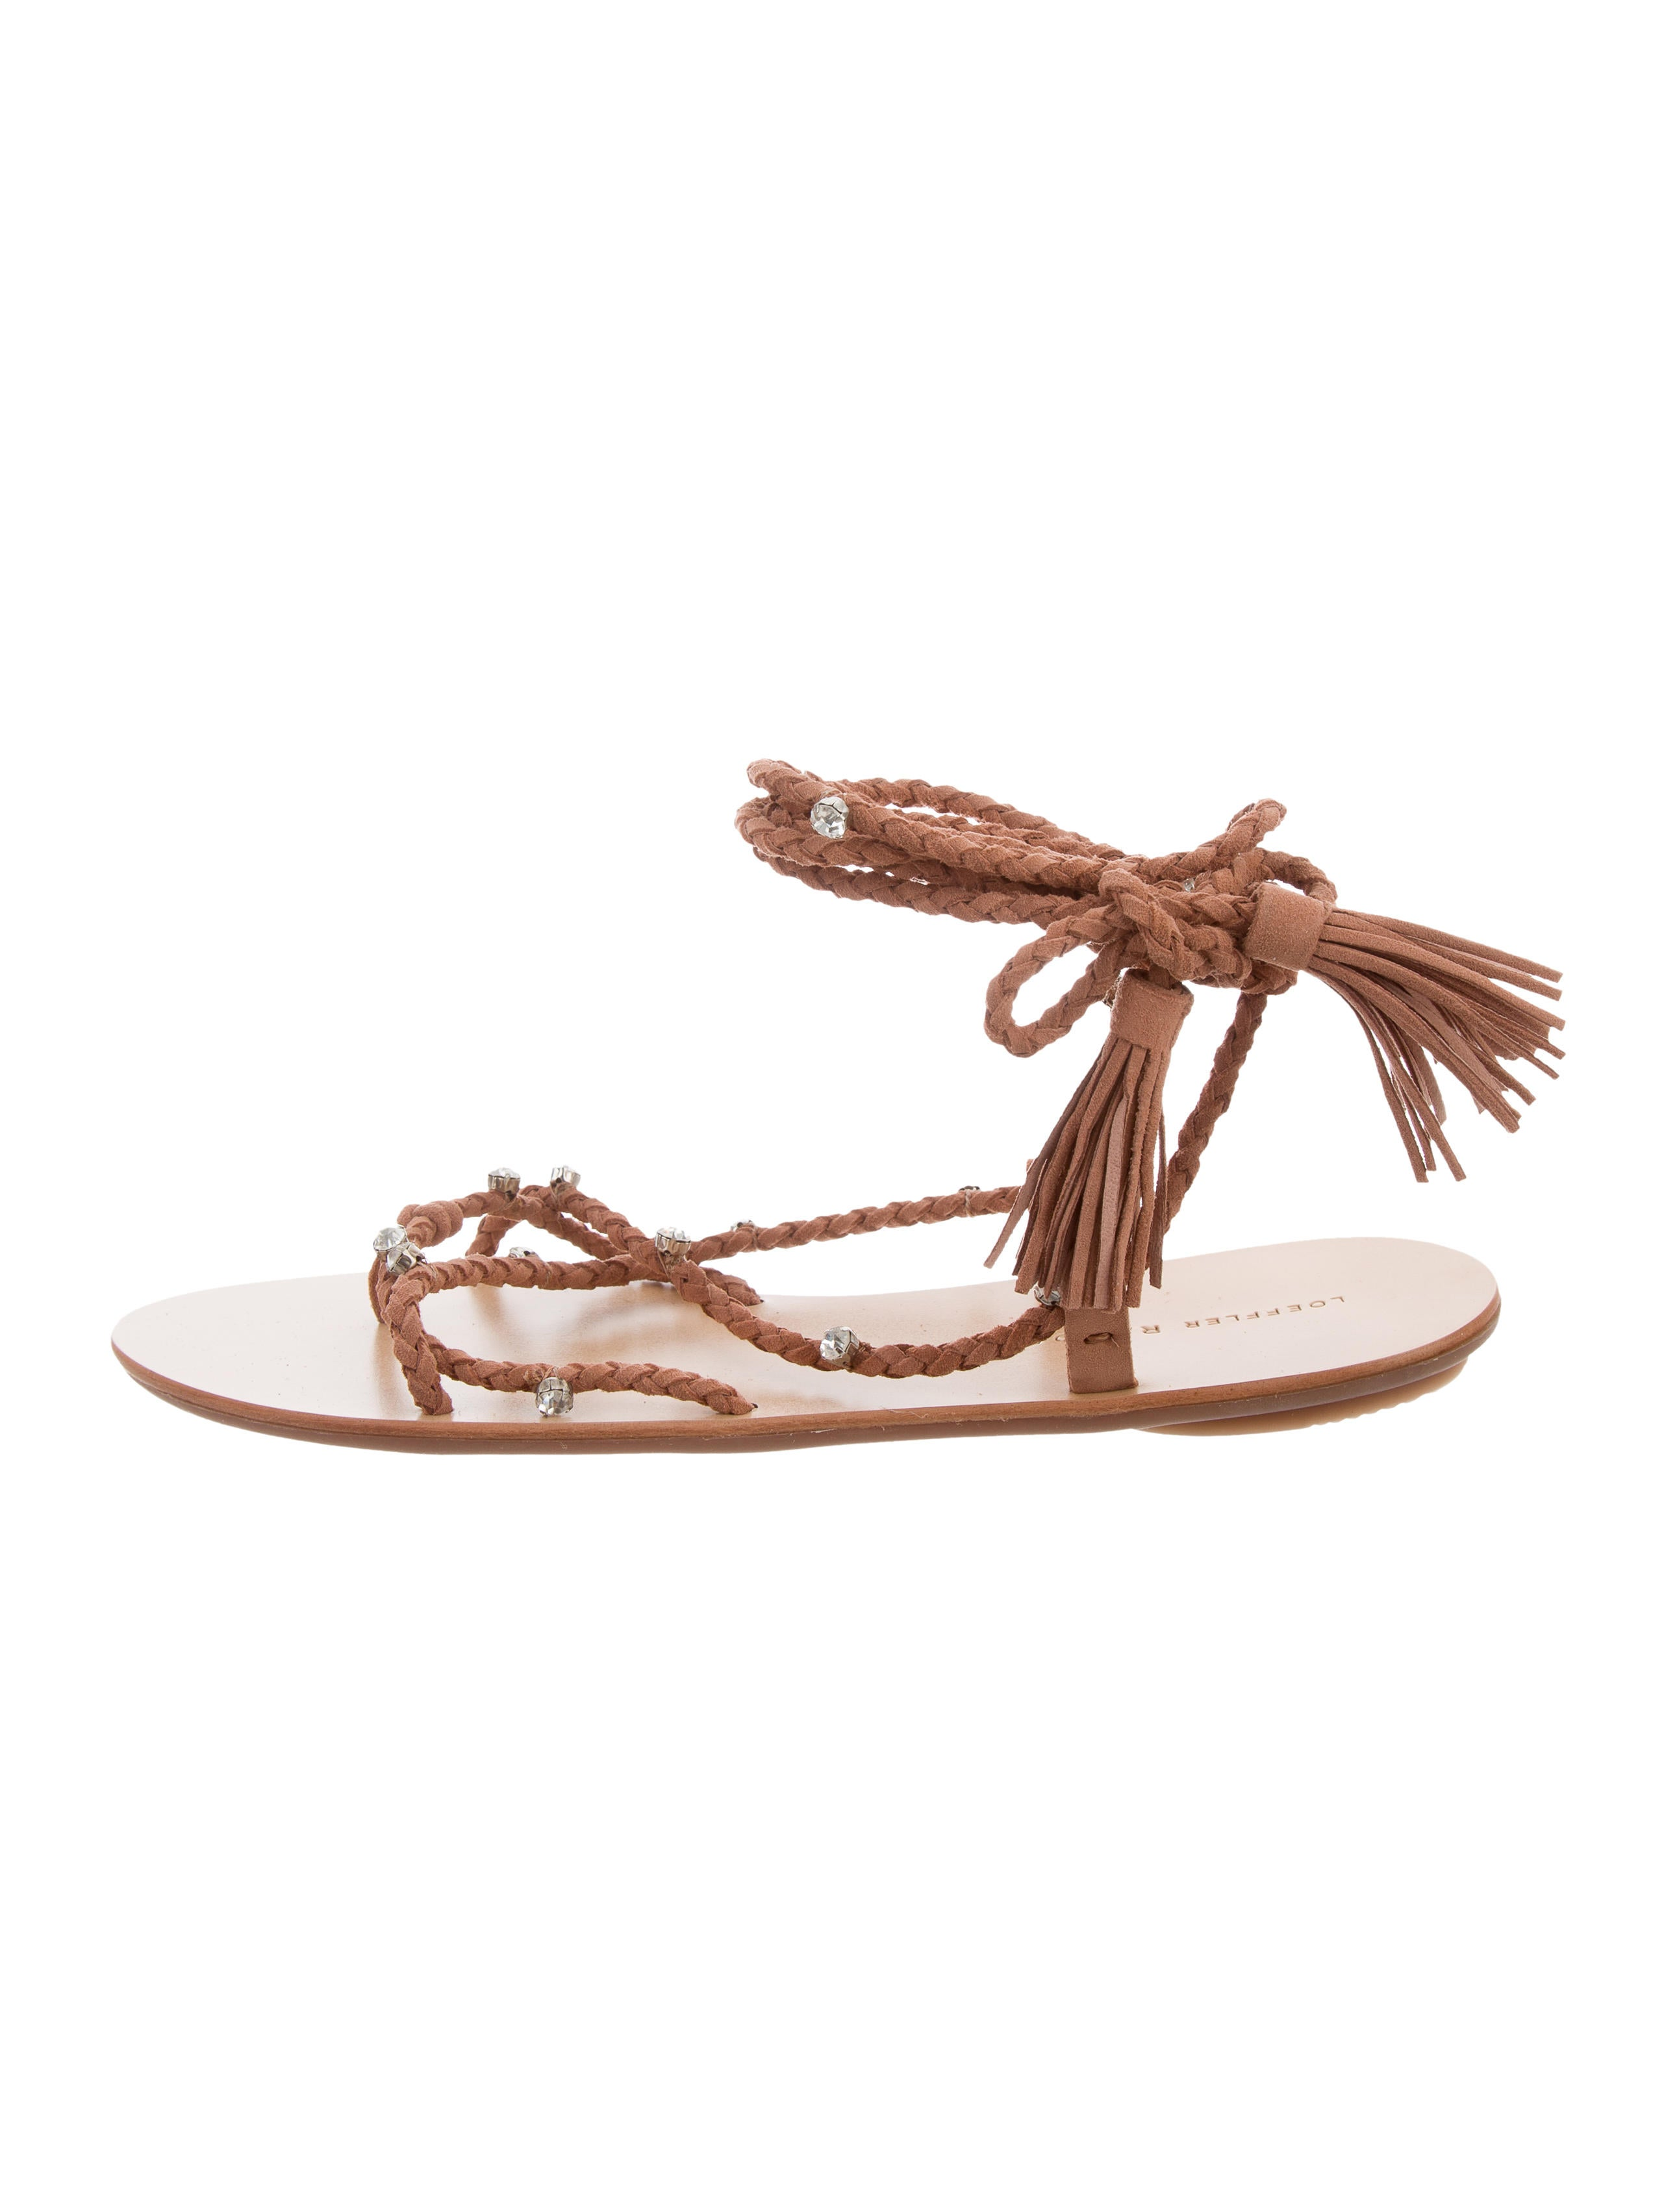 best wholesale online affordable sale online Loeffler Randall Bo Embellished Sandals w/ Tags the cheapest cheap price amazon cheap price ZknA6